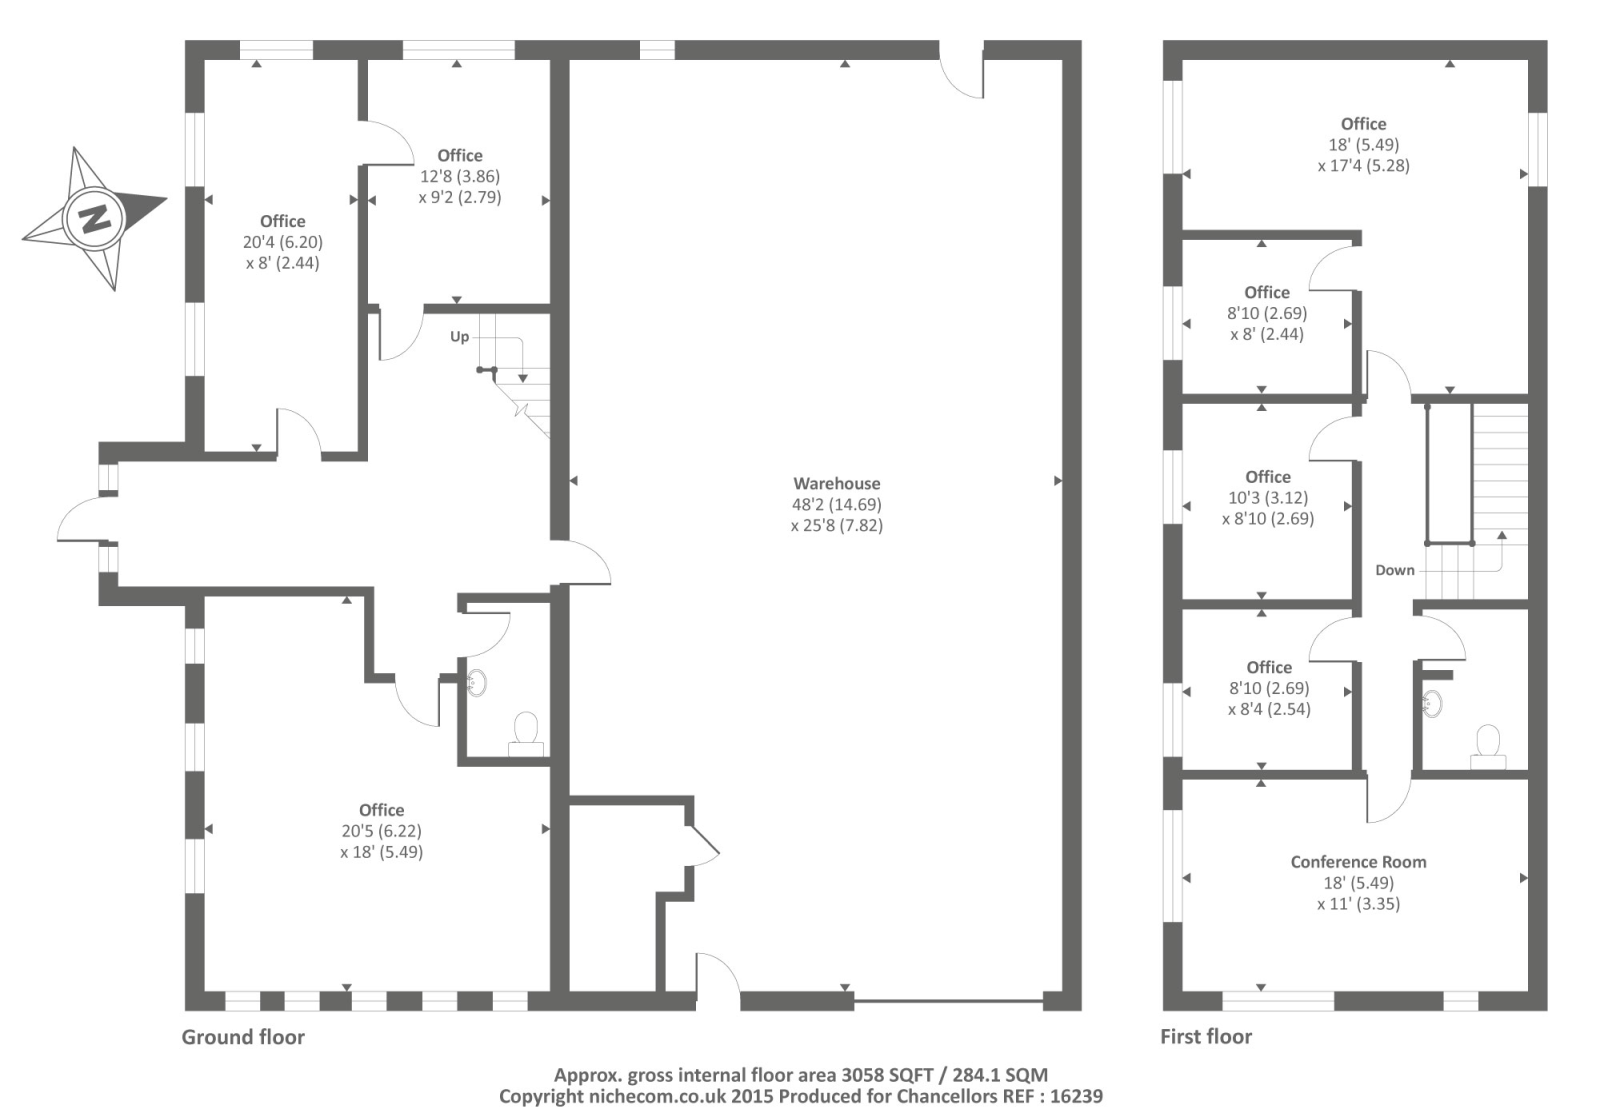 Marlborough business centre hanworth lane chertsey kt16 for Marlborough house floor plan